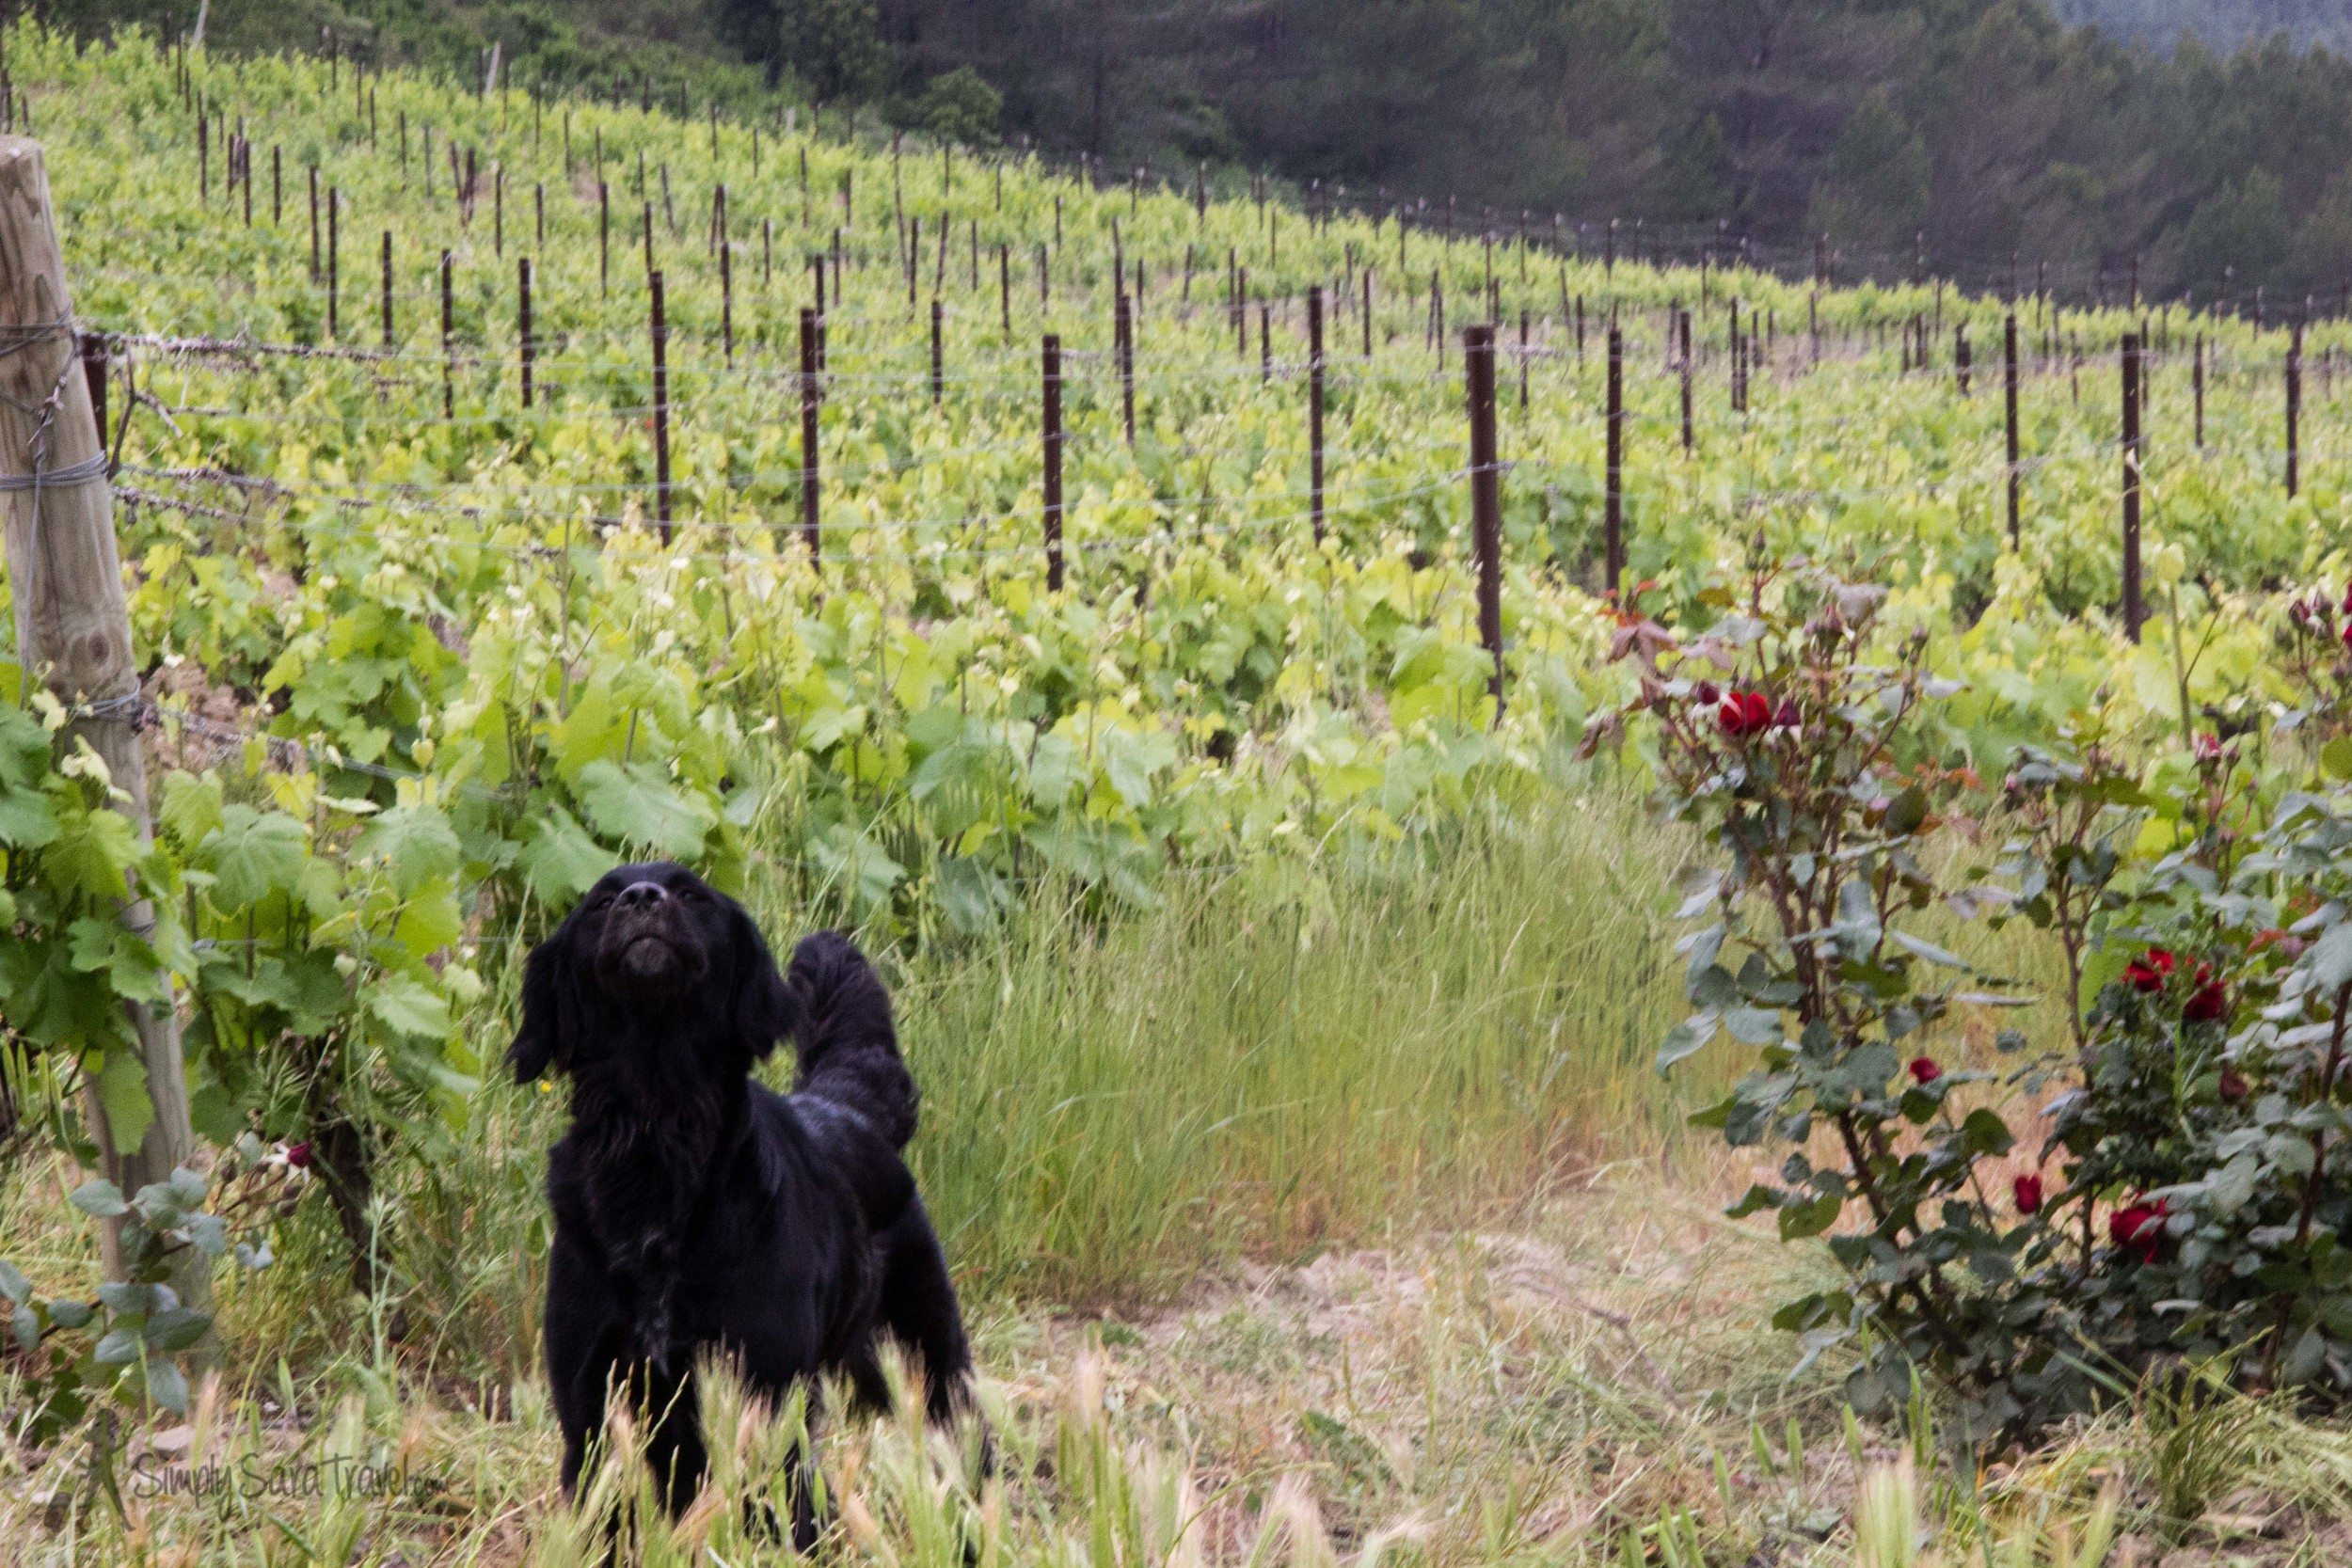 Though Carol does most of the work at her vineyard herself, there are of course a few more helping hands - and paws - with this friendly guy watching over daily operations.